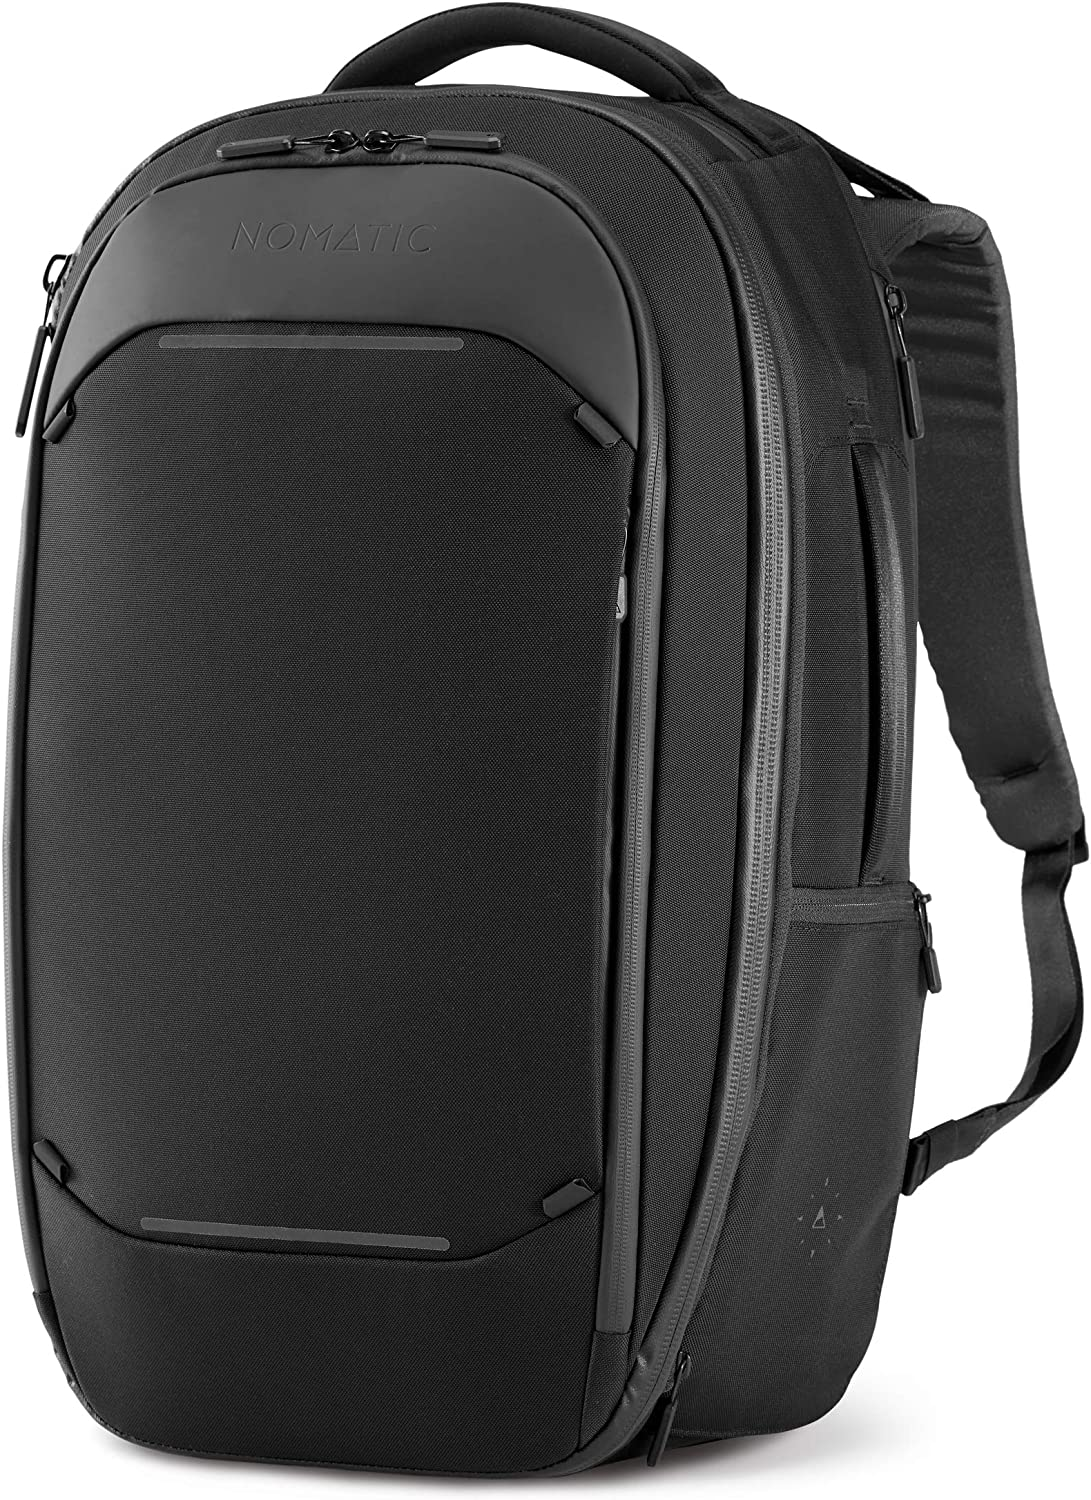 Nomatic Navigator Travel Backpack 32L W/ 9L Built-In Expansion | Anti-Theft Carry-On Size for Travel | 17